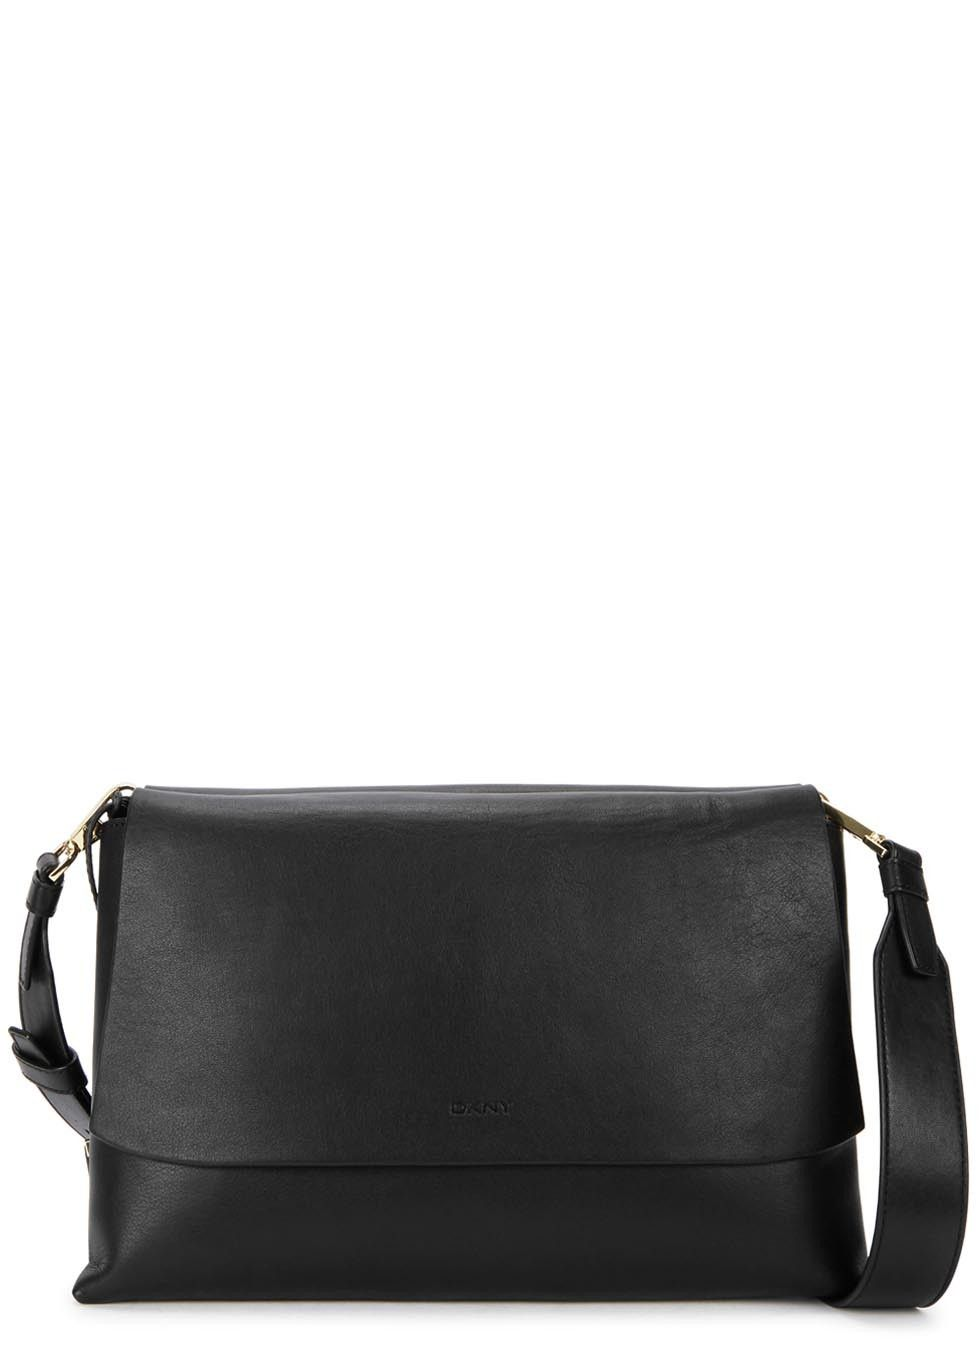 Pin By M D On New Work Bag Pinterest Bags Harvey Nichols And Leather Shoulder